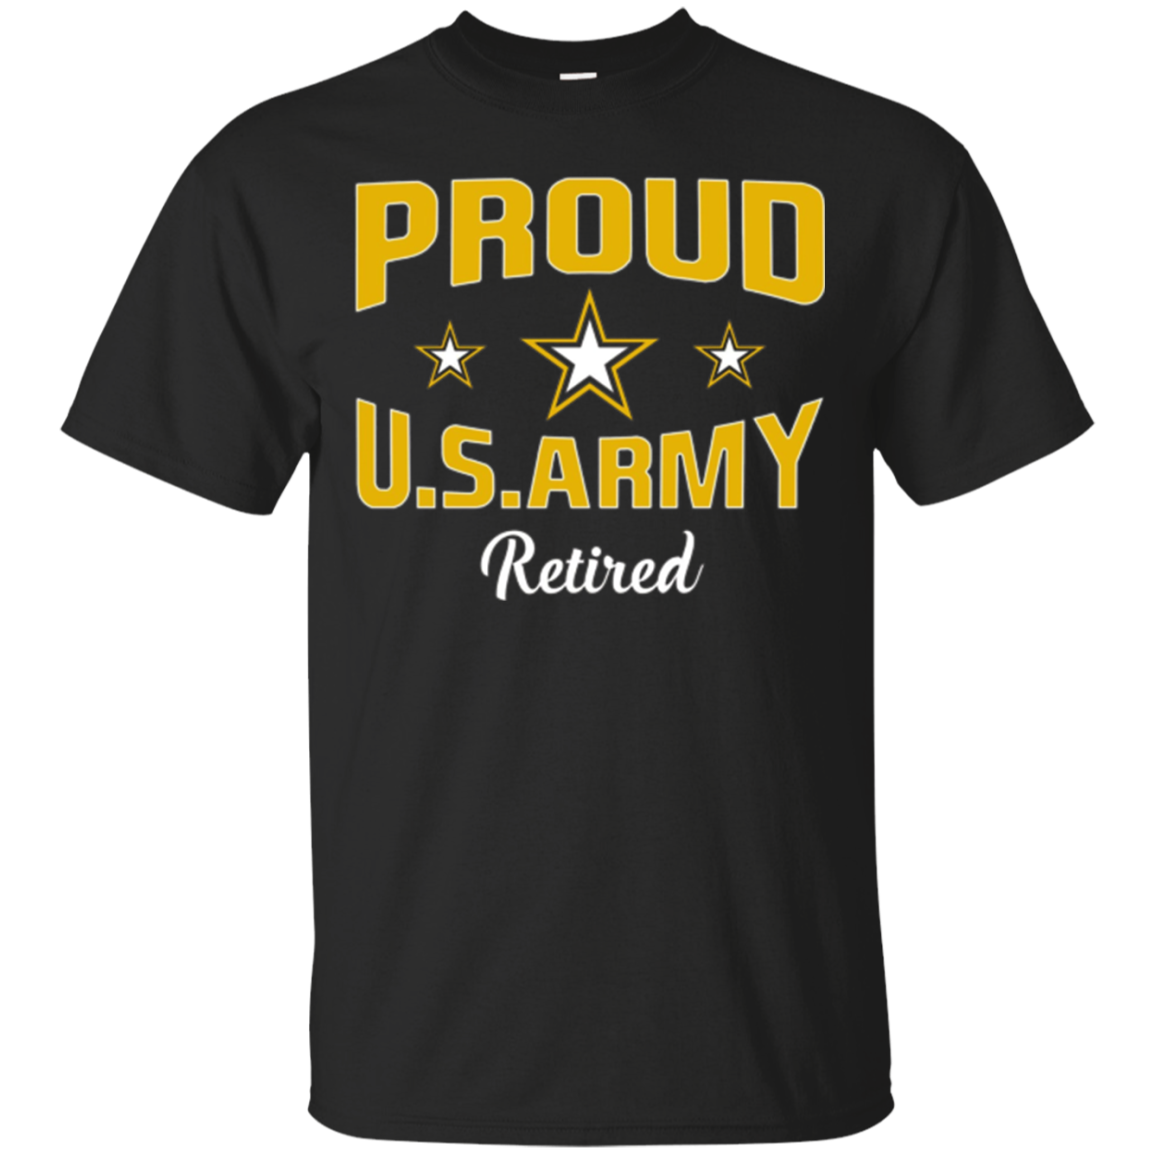 Proud U.S. Army Retired T-Shirt